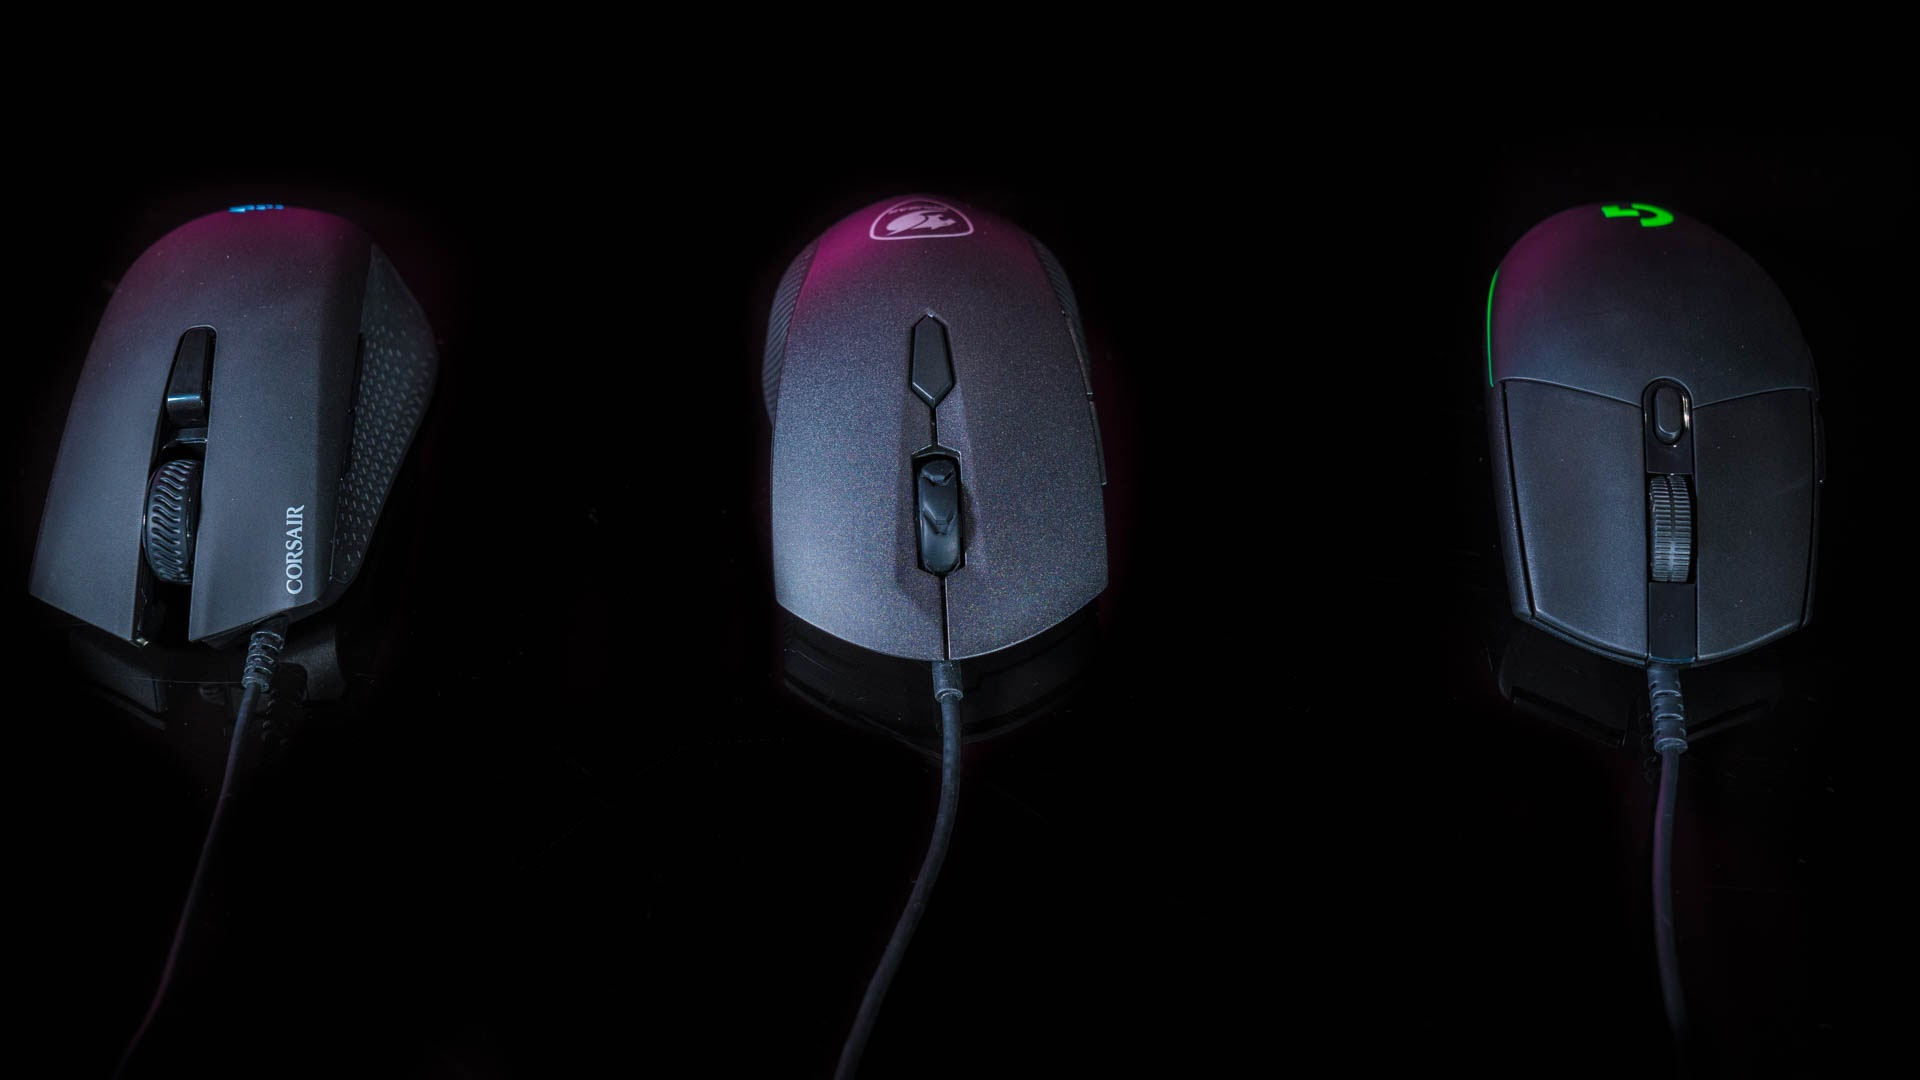 $30 Gaming Mice - Hands-on with Corsair, Logitech, and